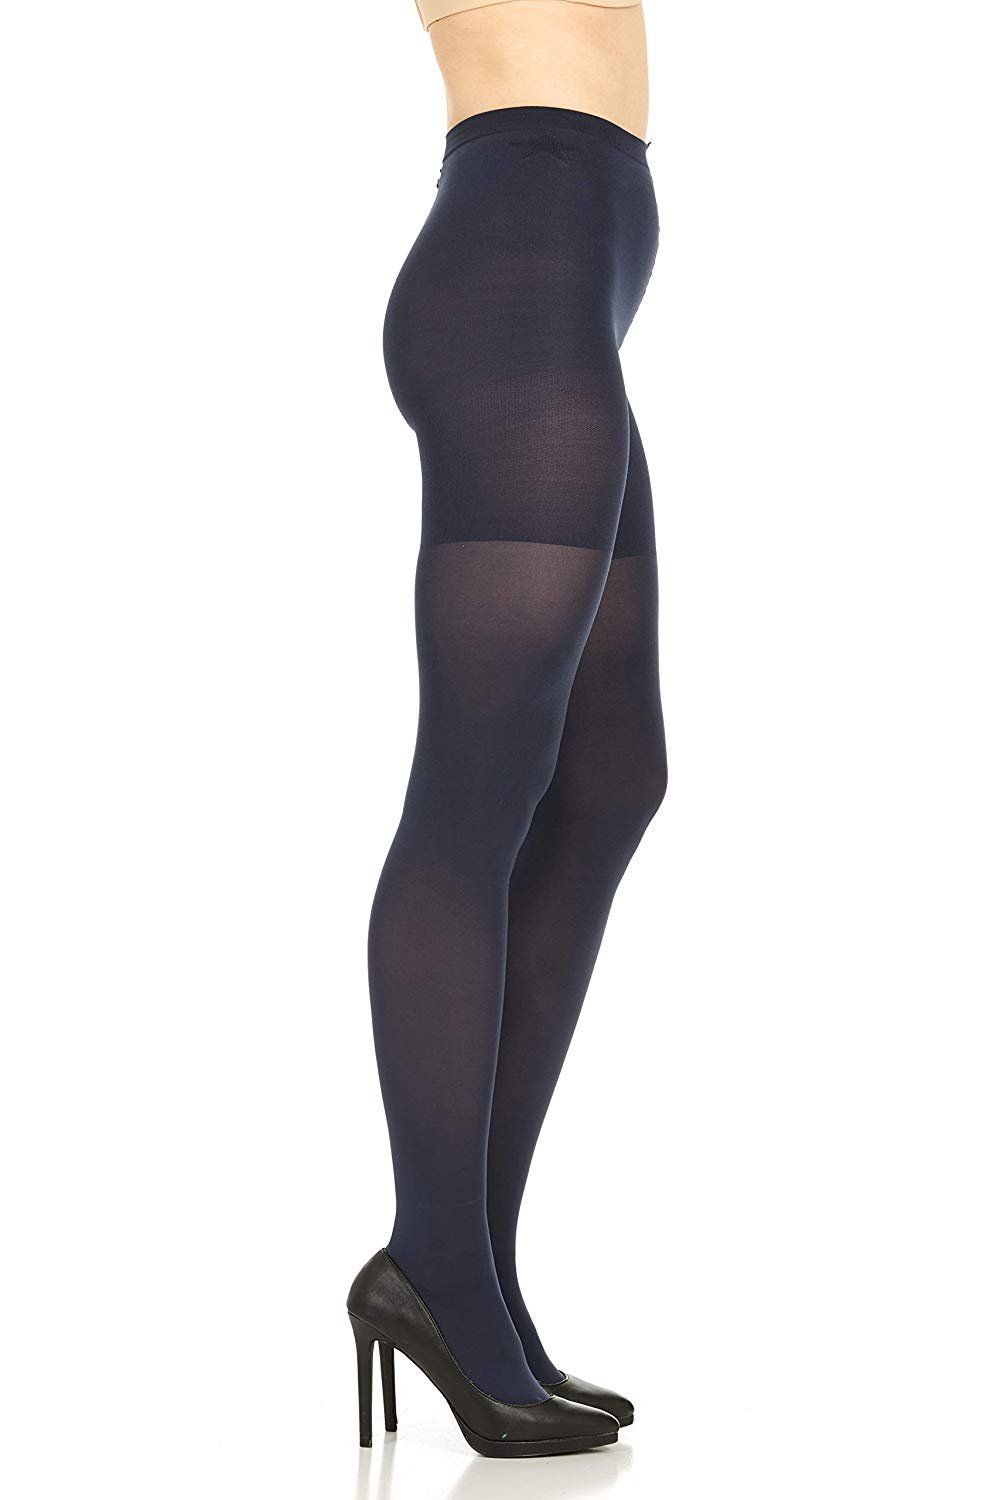 0c9154c432c5e6 Star Power By Spanx Womens Center-stage Shaping Tights PLUS Amethyst Sz  F#Womens